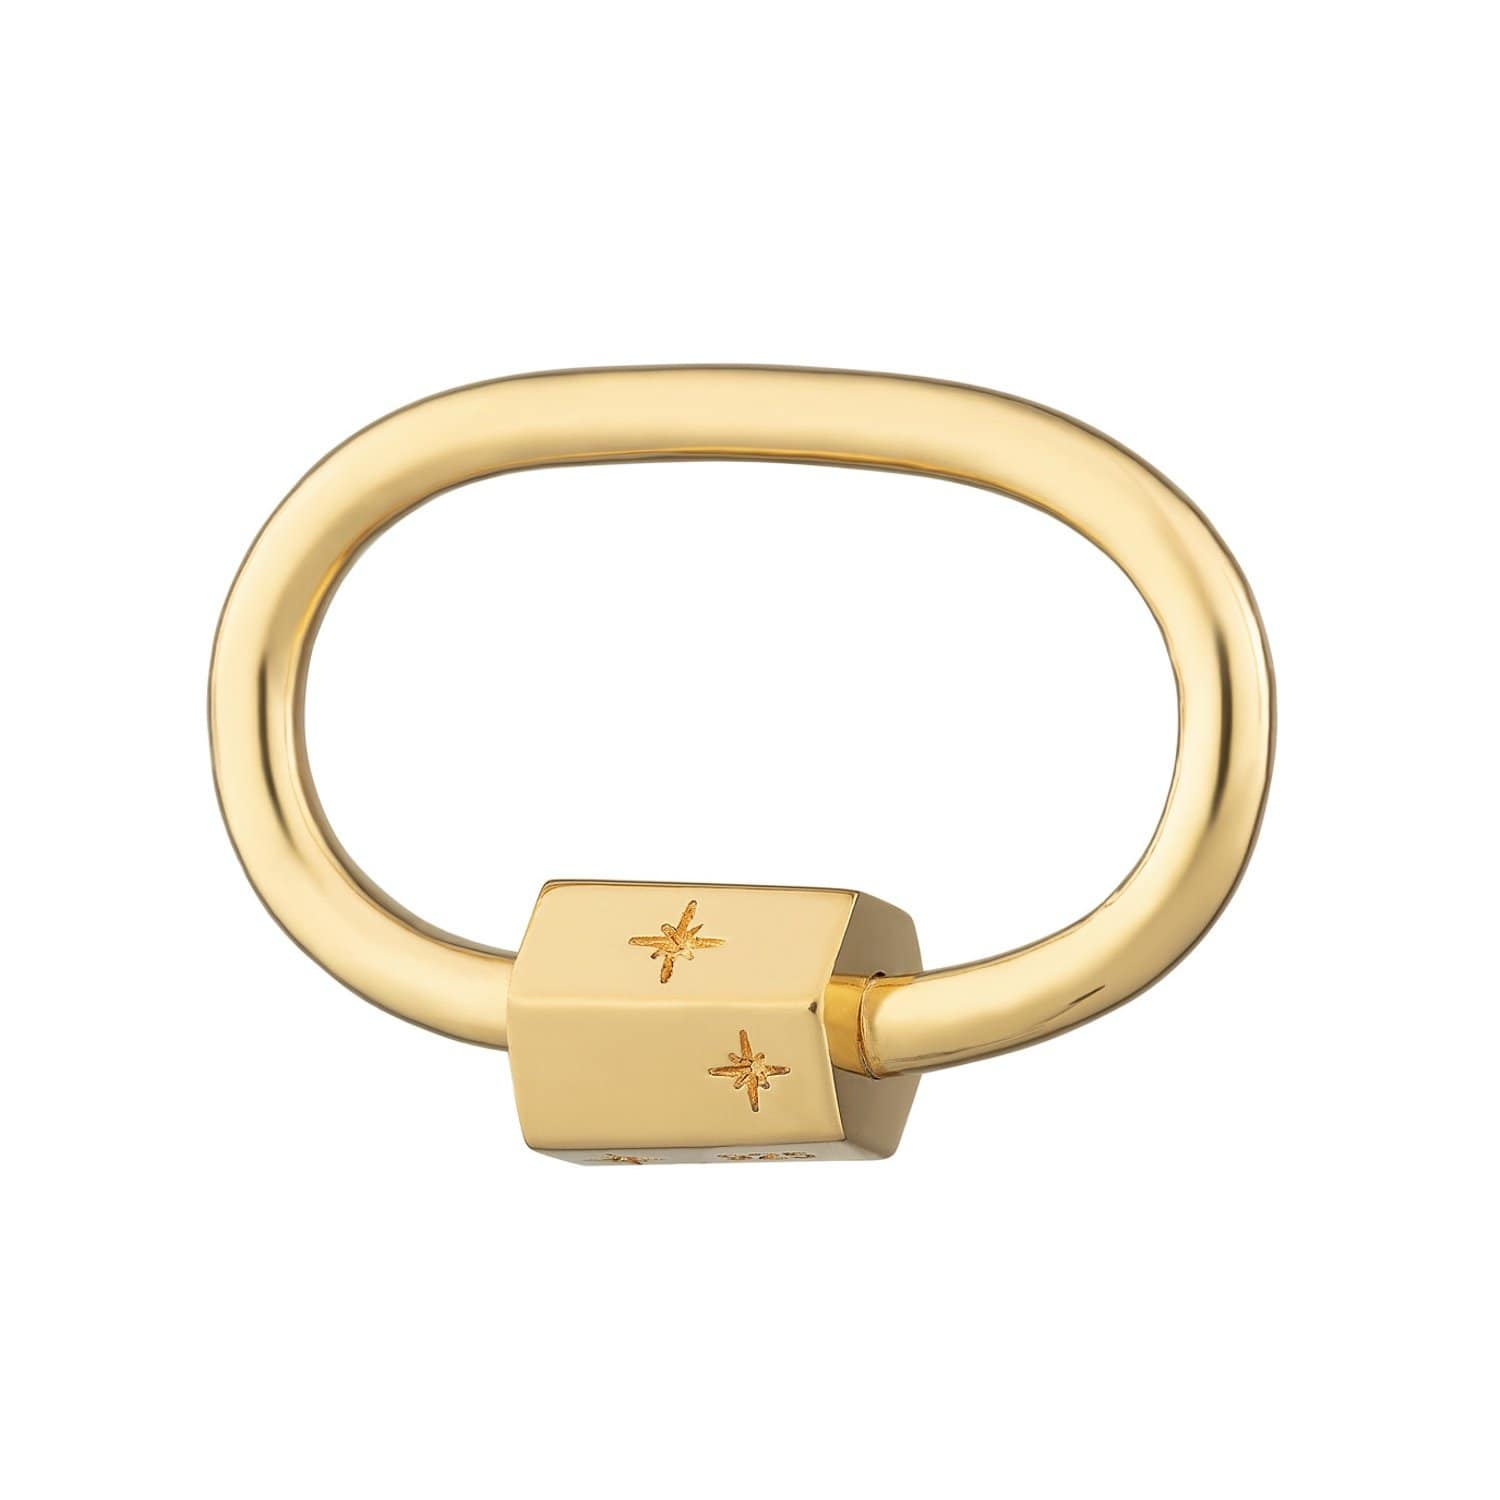 Gold Plated Oval Carabiner Charm Lock by Lily Charmed